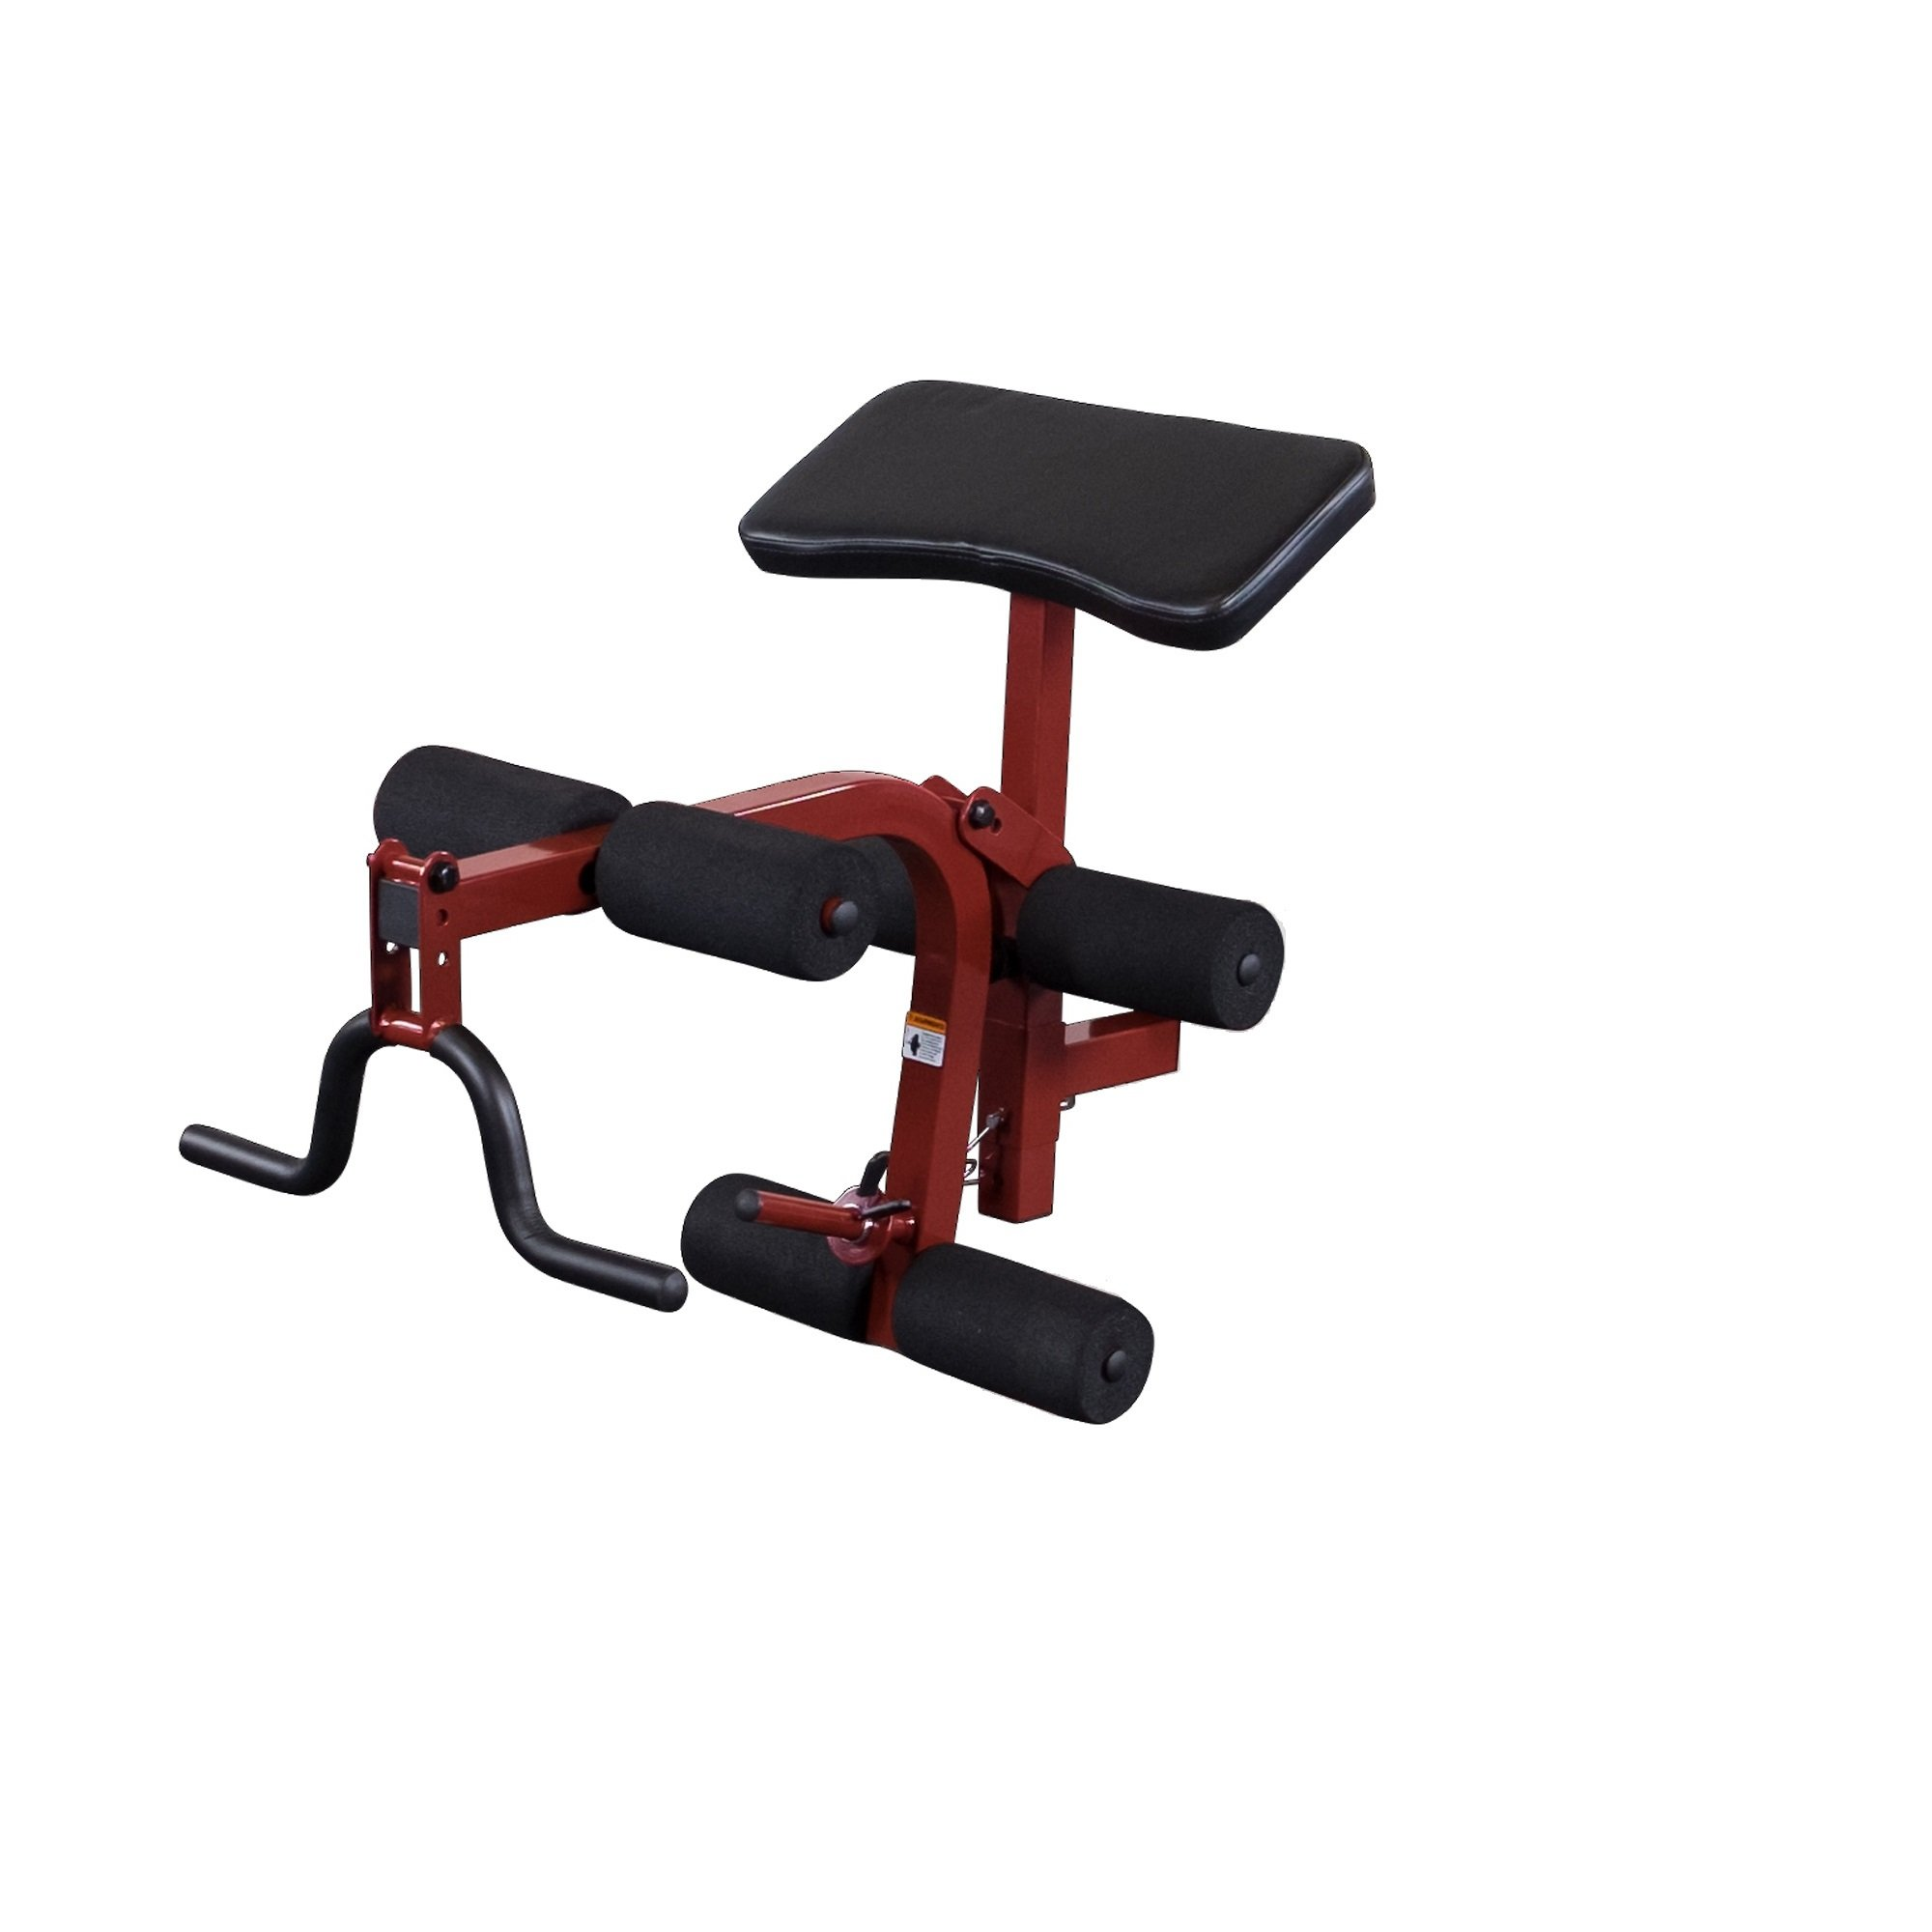 Best Fitness BFPL10 Leg and Preacher Attachment for BFFID10 Bench by Best Fitness